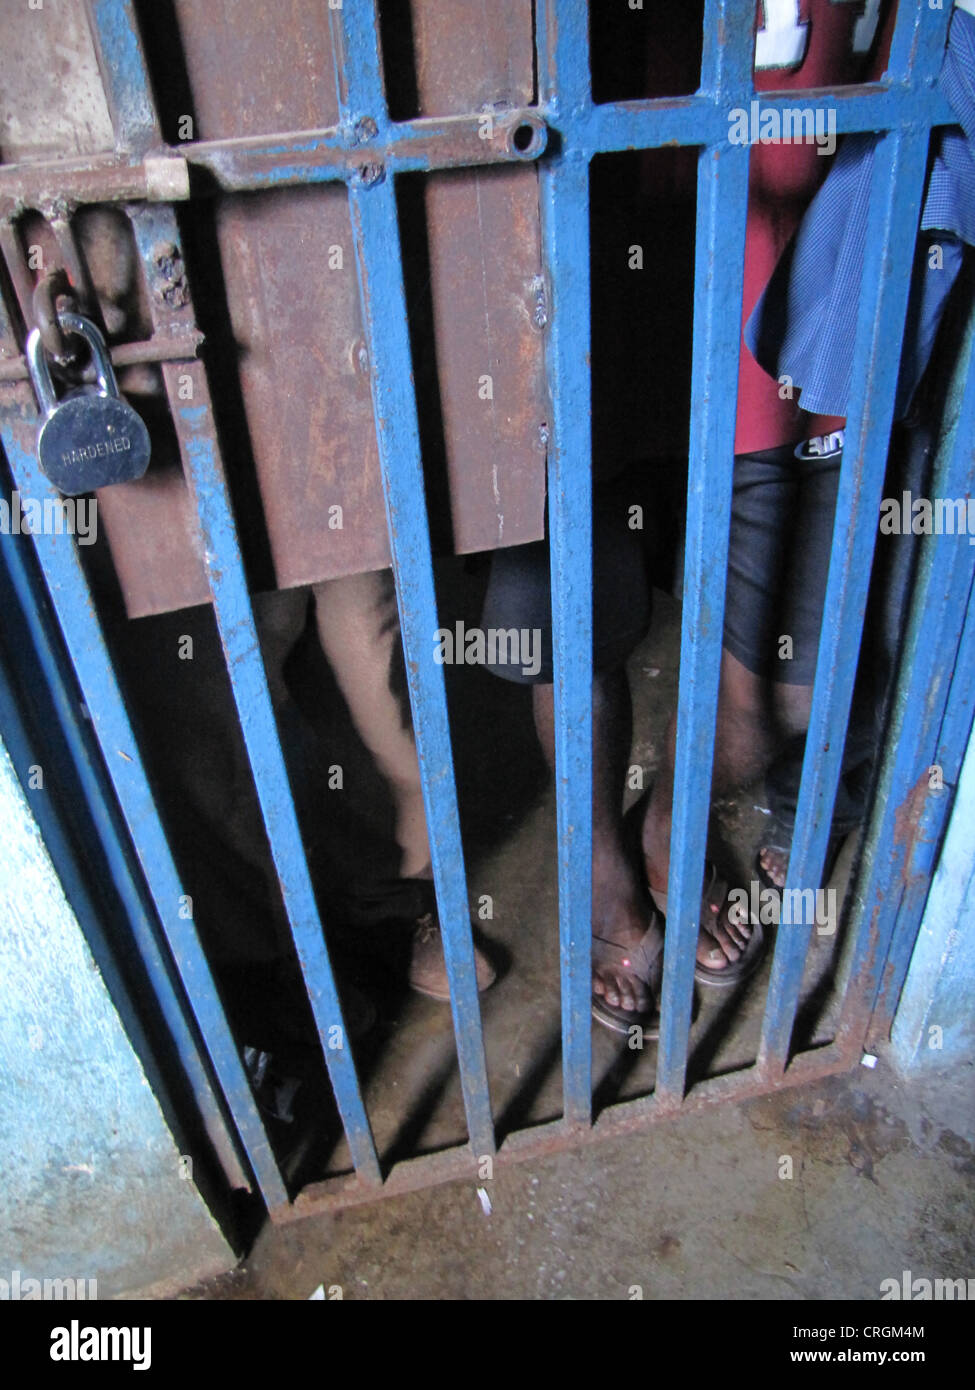 Detainees behind bars in run-down predetention cell in police station, Haiti, Grande Anse, Jeremie - Stock Image